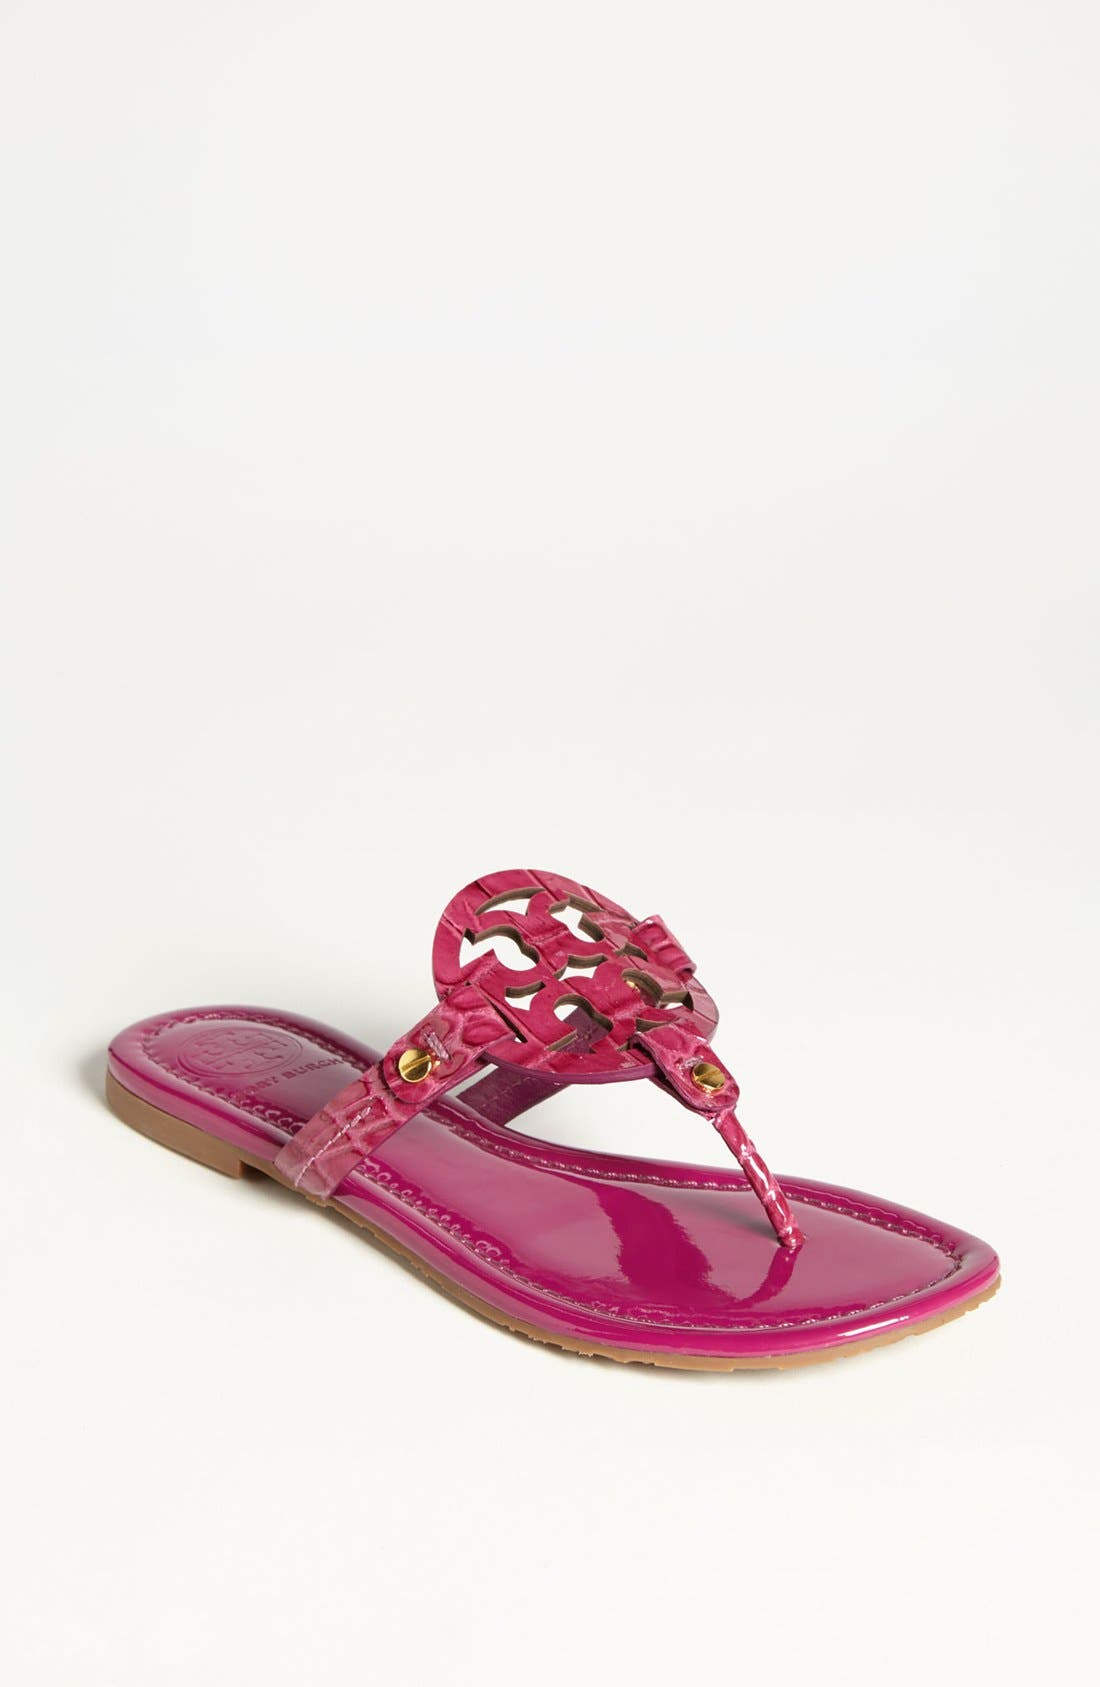 Main Image - Tory Burch 'Miller' Croc Embossed Sandal (Online Only)